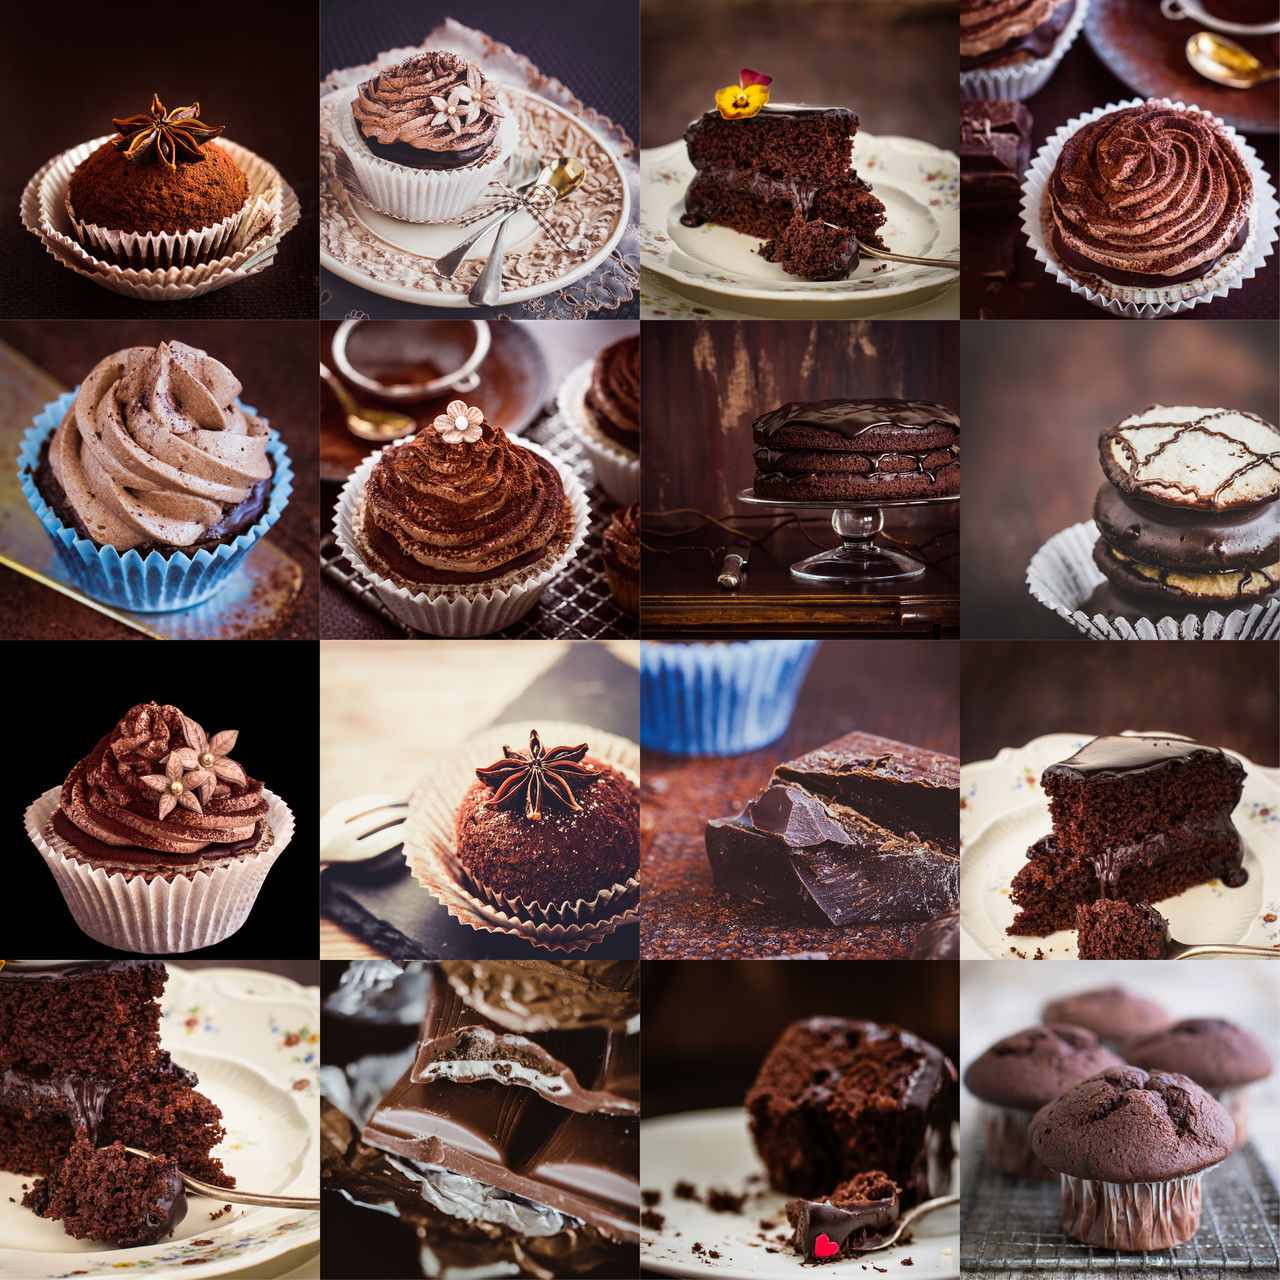 Cake Chocolate Choice Close-up Collage Collection Cupcake Day Dessert Food Food And Drink Freshness Indoors  Indulgence Multi Colored Multiple Image No People Ready-to-eat Sweet Food Temptation Unhealthy Eating Variation